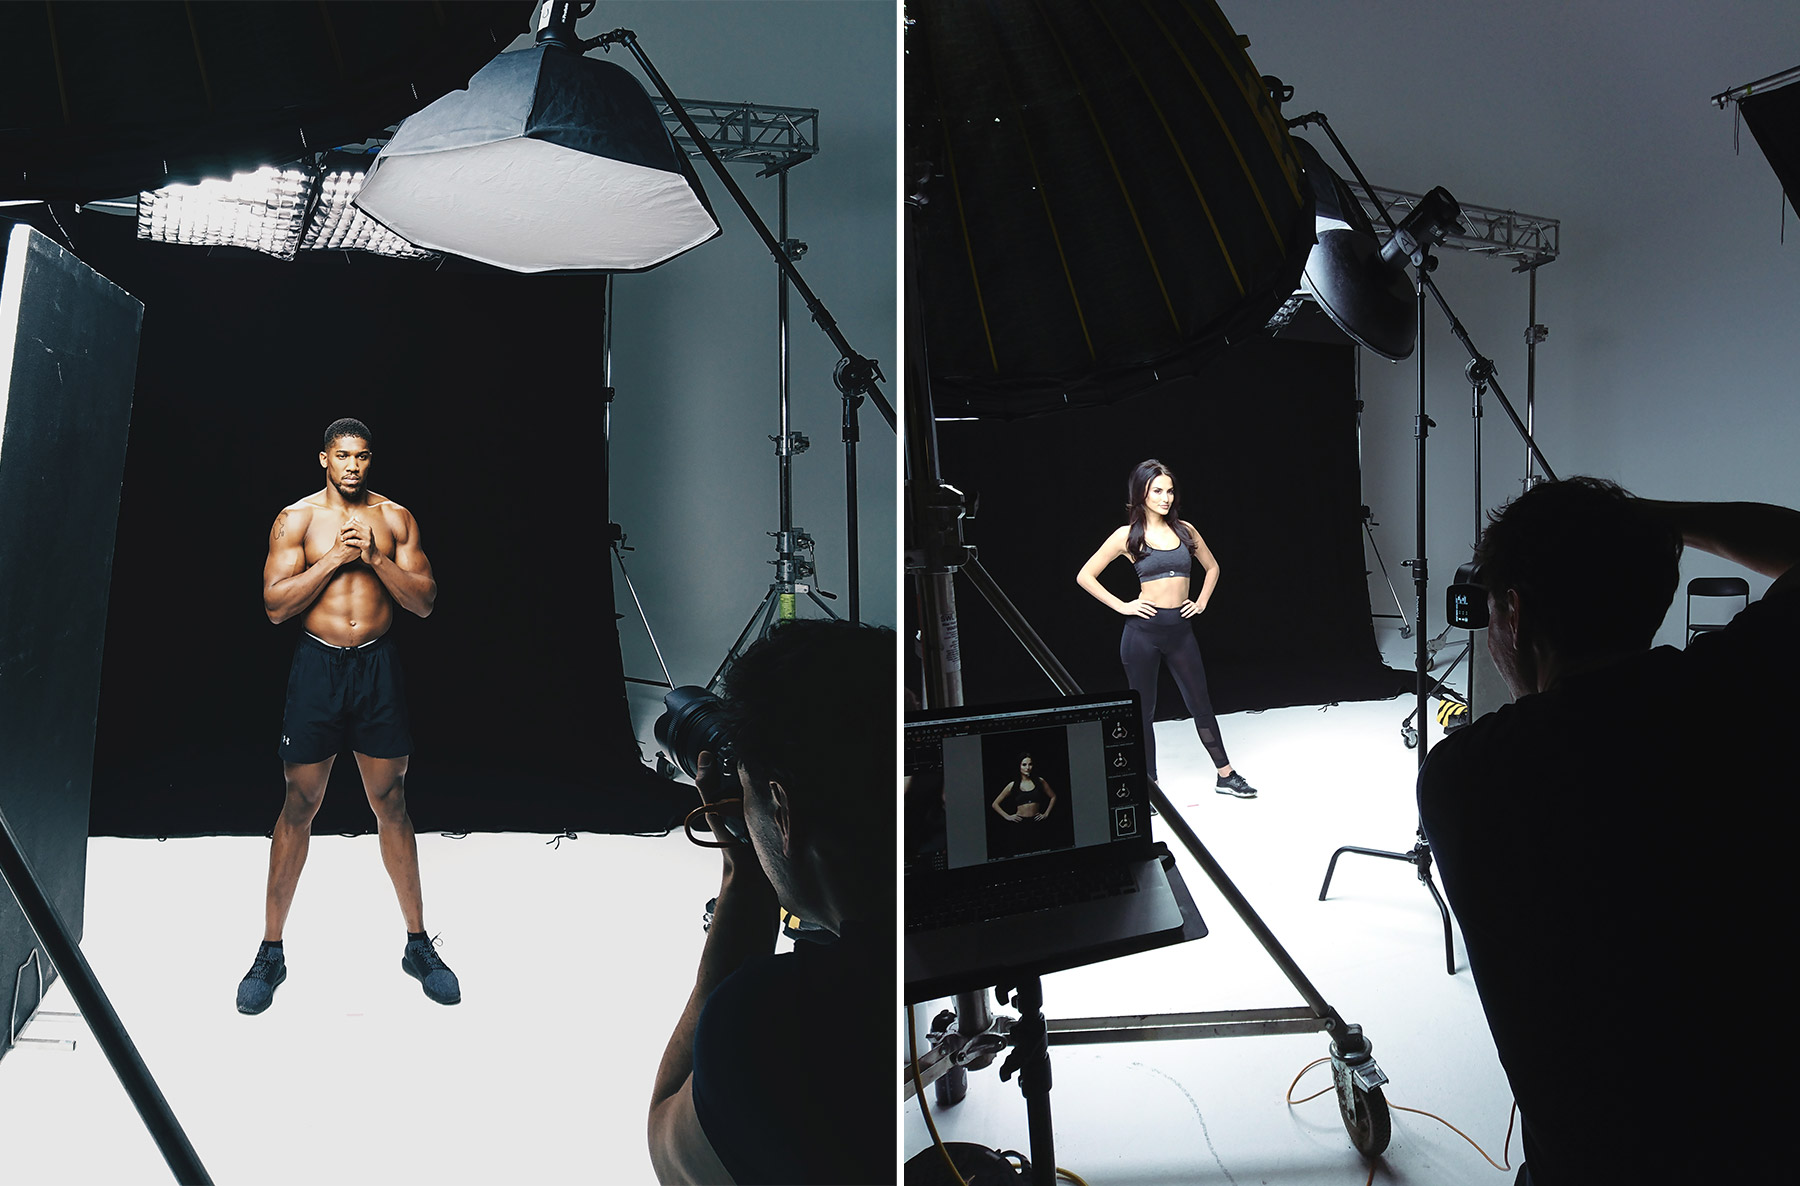 Behind the scenes on a sports celebrity shoot